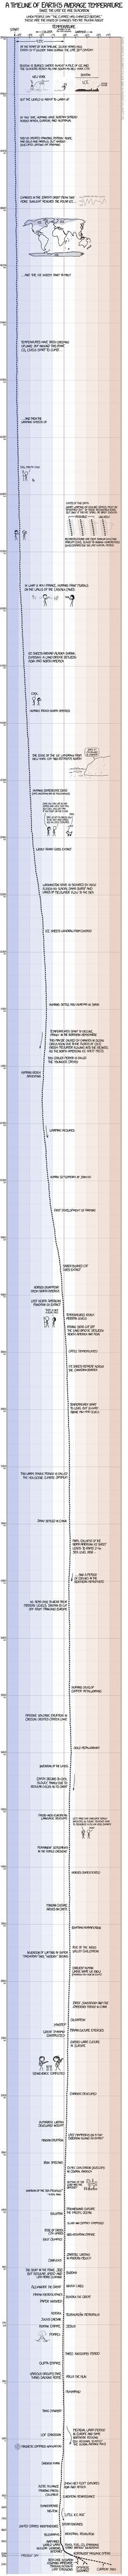 A new illustration from cartoonist Randall Munroe is equal parts fascinating and terrifying...